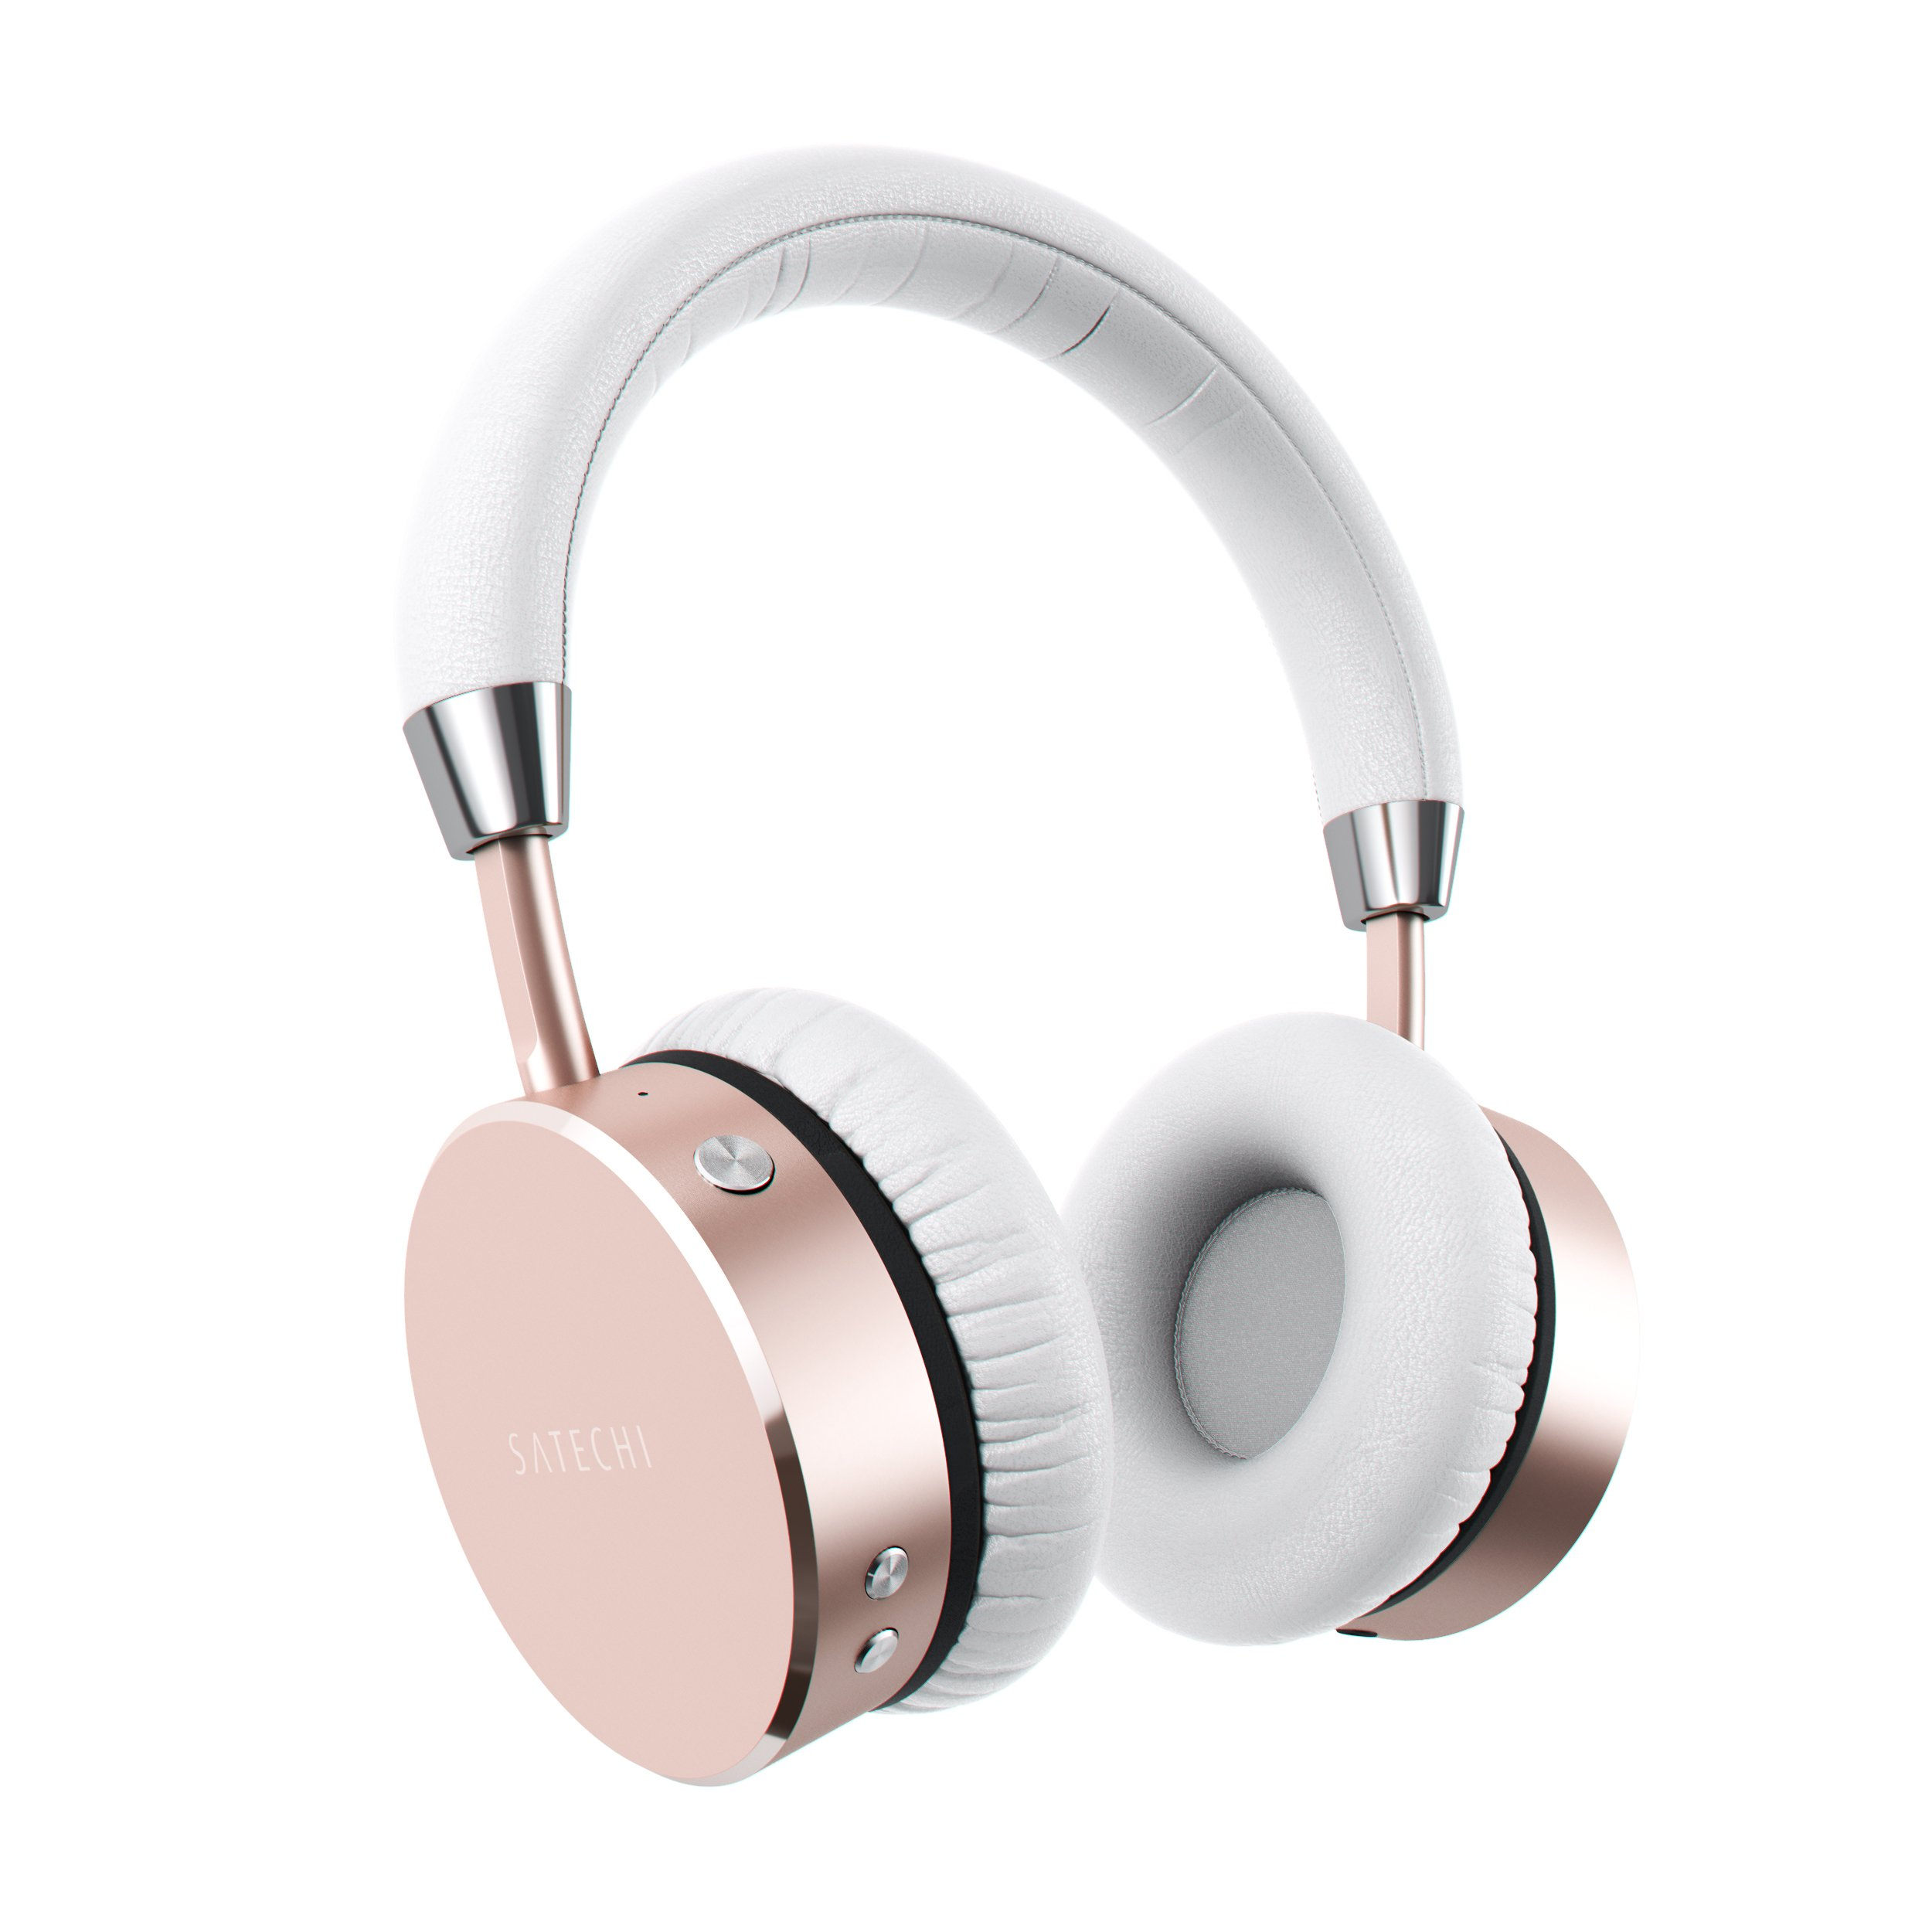 Amazon Com Satechi Aluminum Bluetooth Wireless Headphones With Enhanced Bass 3 5mm Audio Out Jack Compatible With Iphone 11 Pro Max 11 Pro 11 Xs Max Xs Xr X 8 Plus 8 2019 Ipad 2018 Ipad Pro Rose Gold Electronics